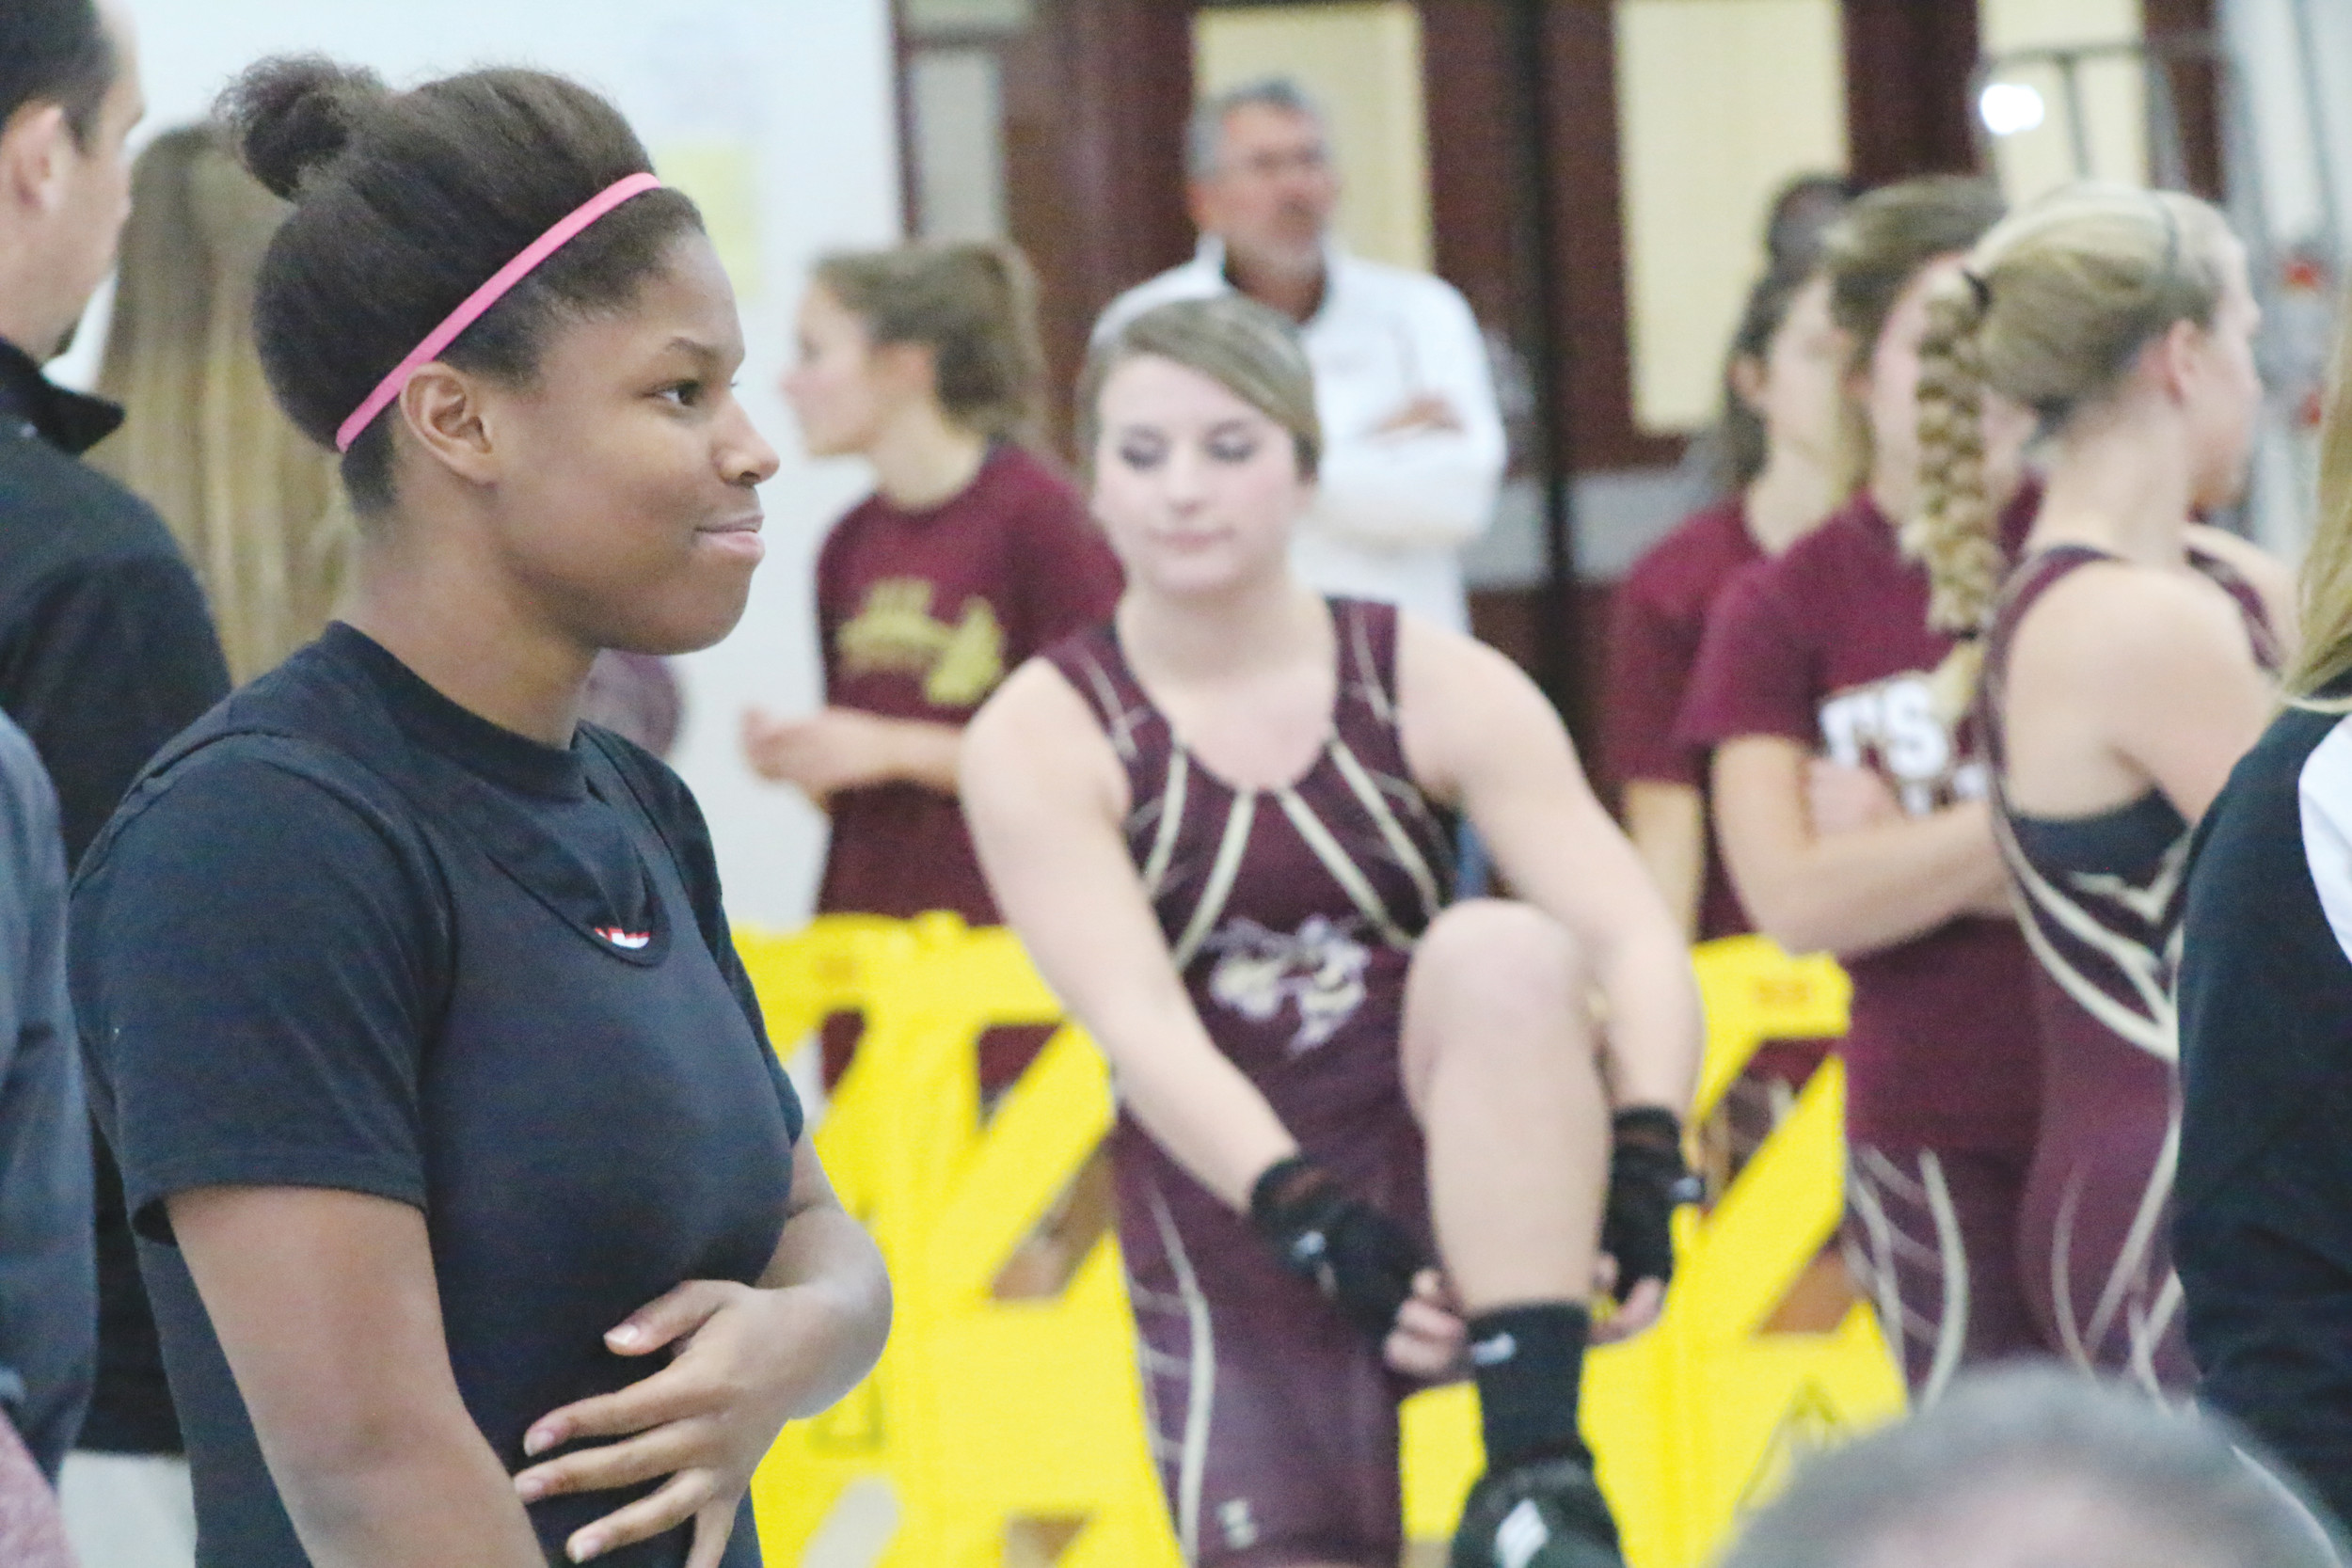 Middleburg High's Neva Clinkscale will follow the footsteps of graduated sister Dede Clinkscale, a third in state finisher in 2014, in her quest for a state weightlifting title.